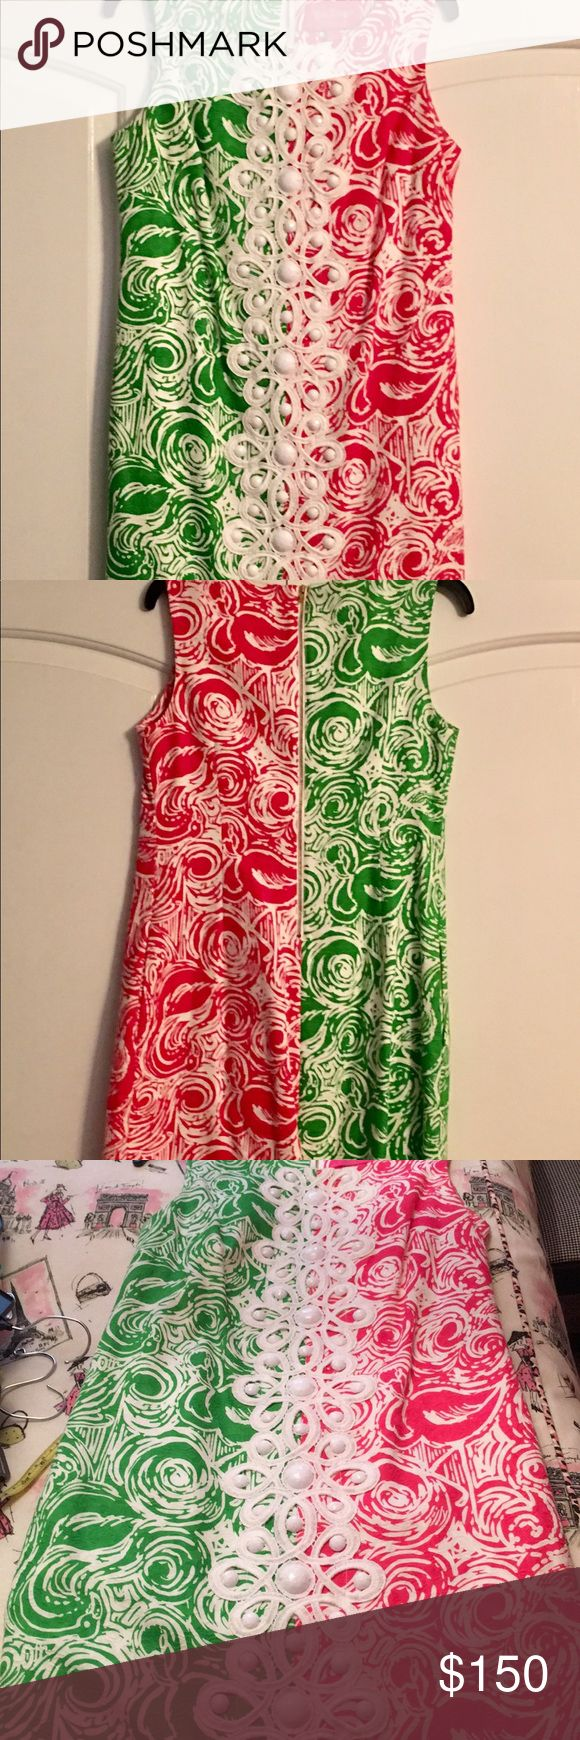 """Dress Lilly Pulitzer Jubilee lined embroidered with large beads down the front! Two front side hidden pockets 35"""" long!! So cute and ready for your summer vacation! Hot pink and green! Worn only a few times great condition! Lilly Pulitzer Dresses Mini"""